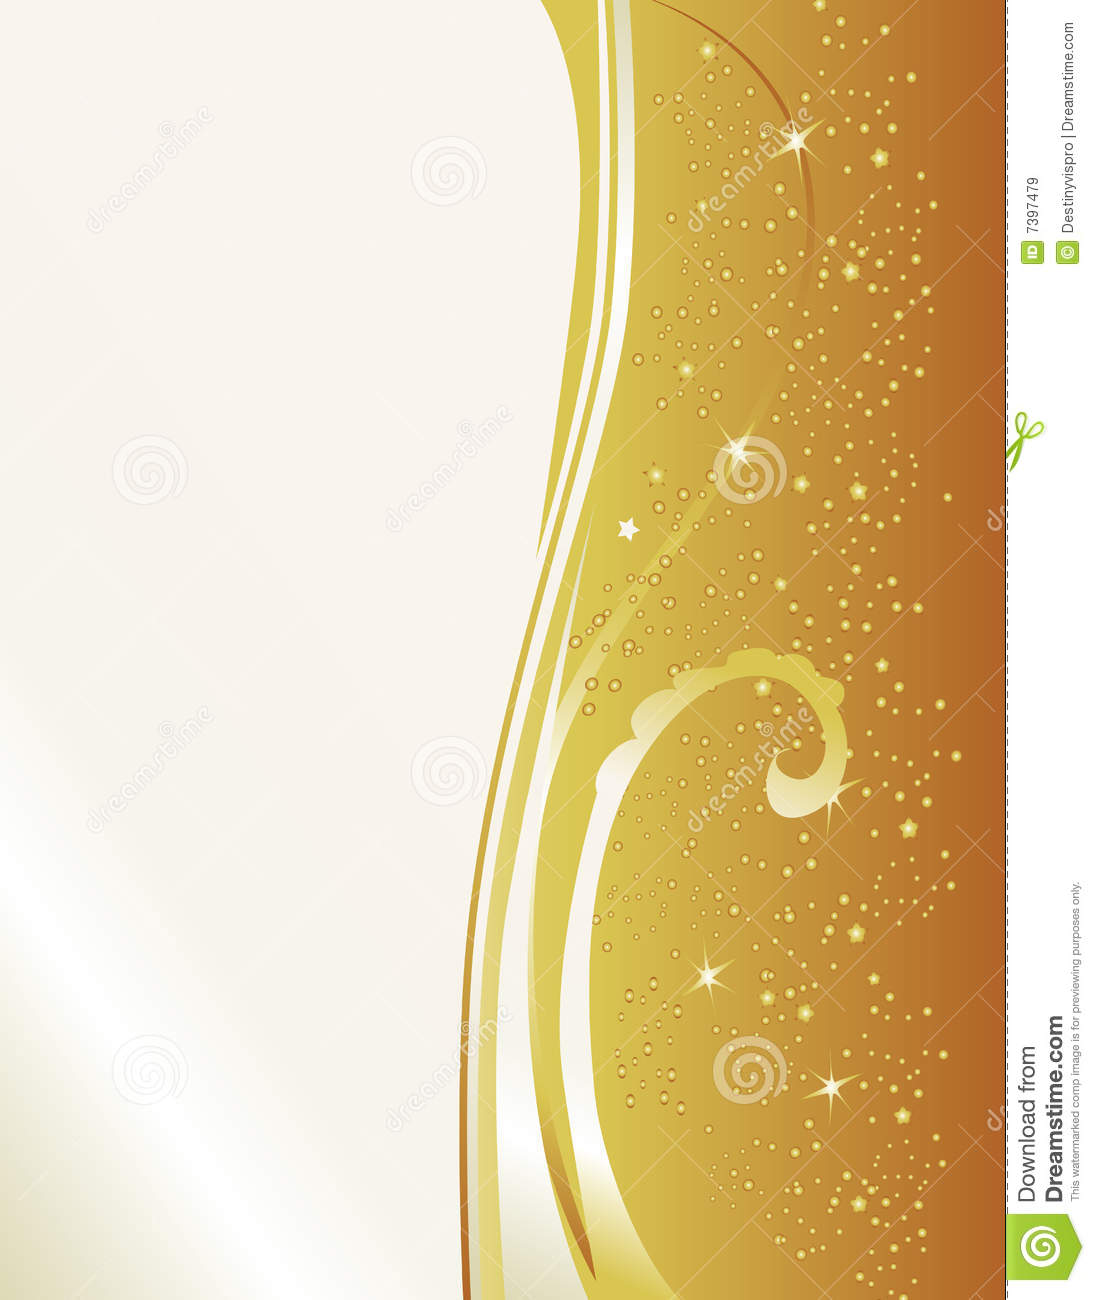 Formal Gold Invitation Stock Illustration Illustration Of Swirl